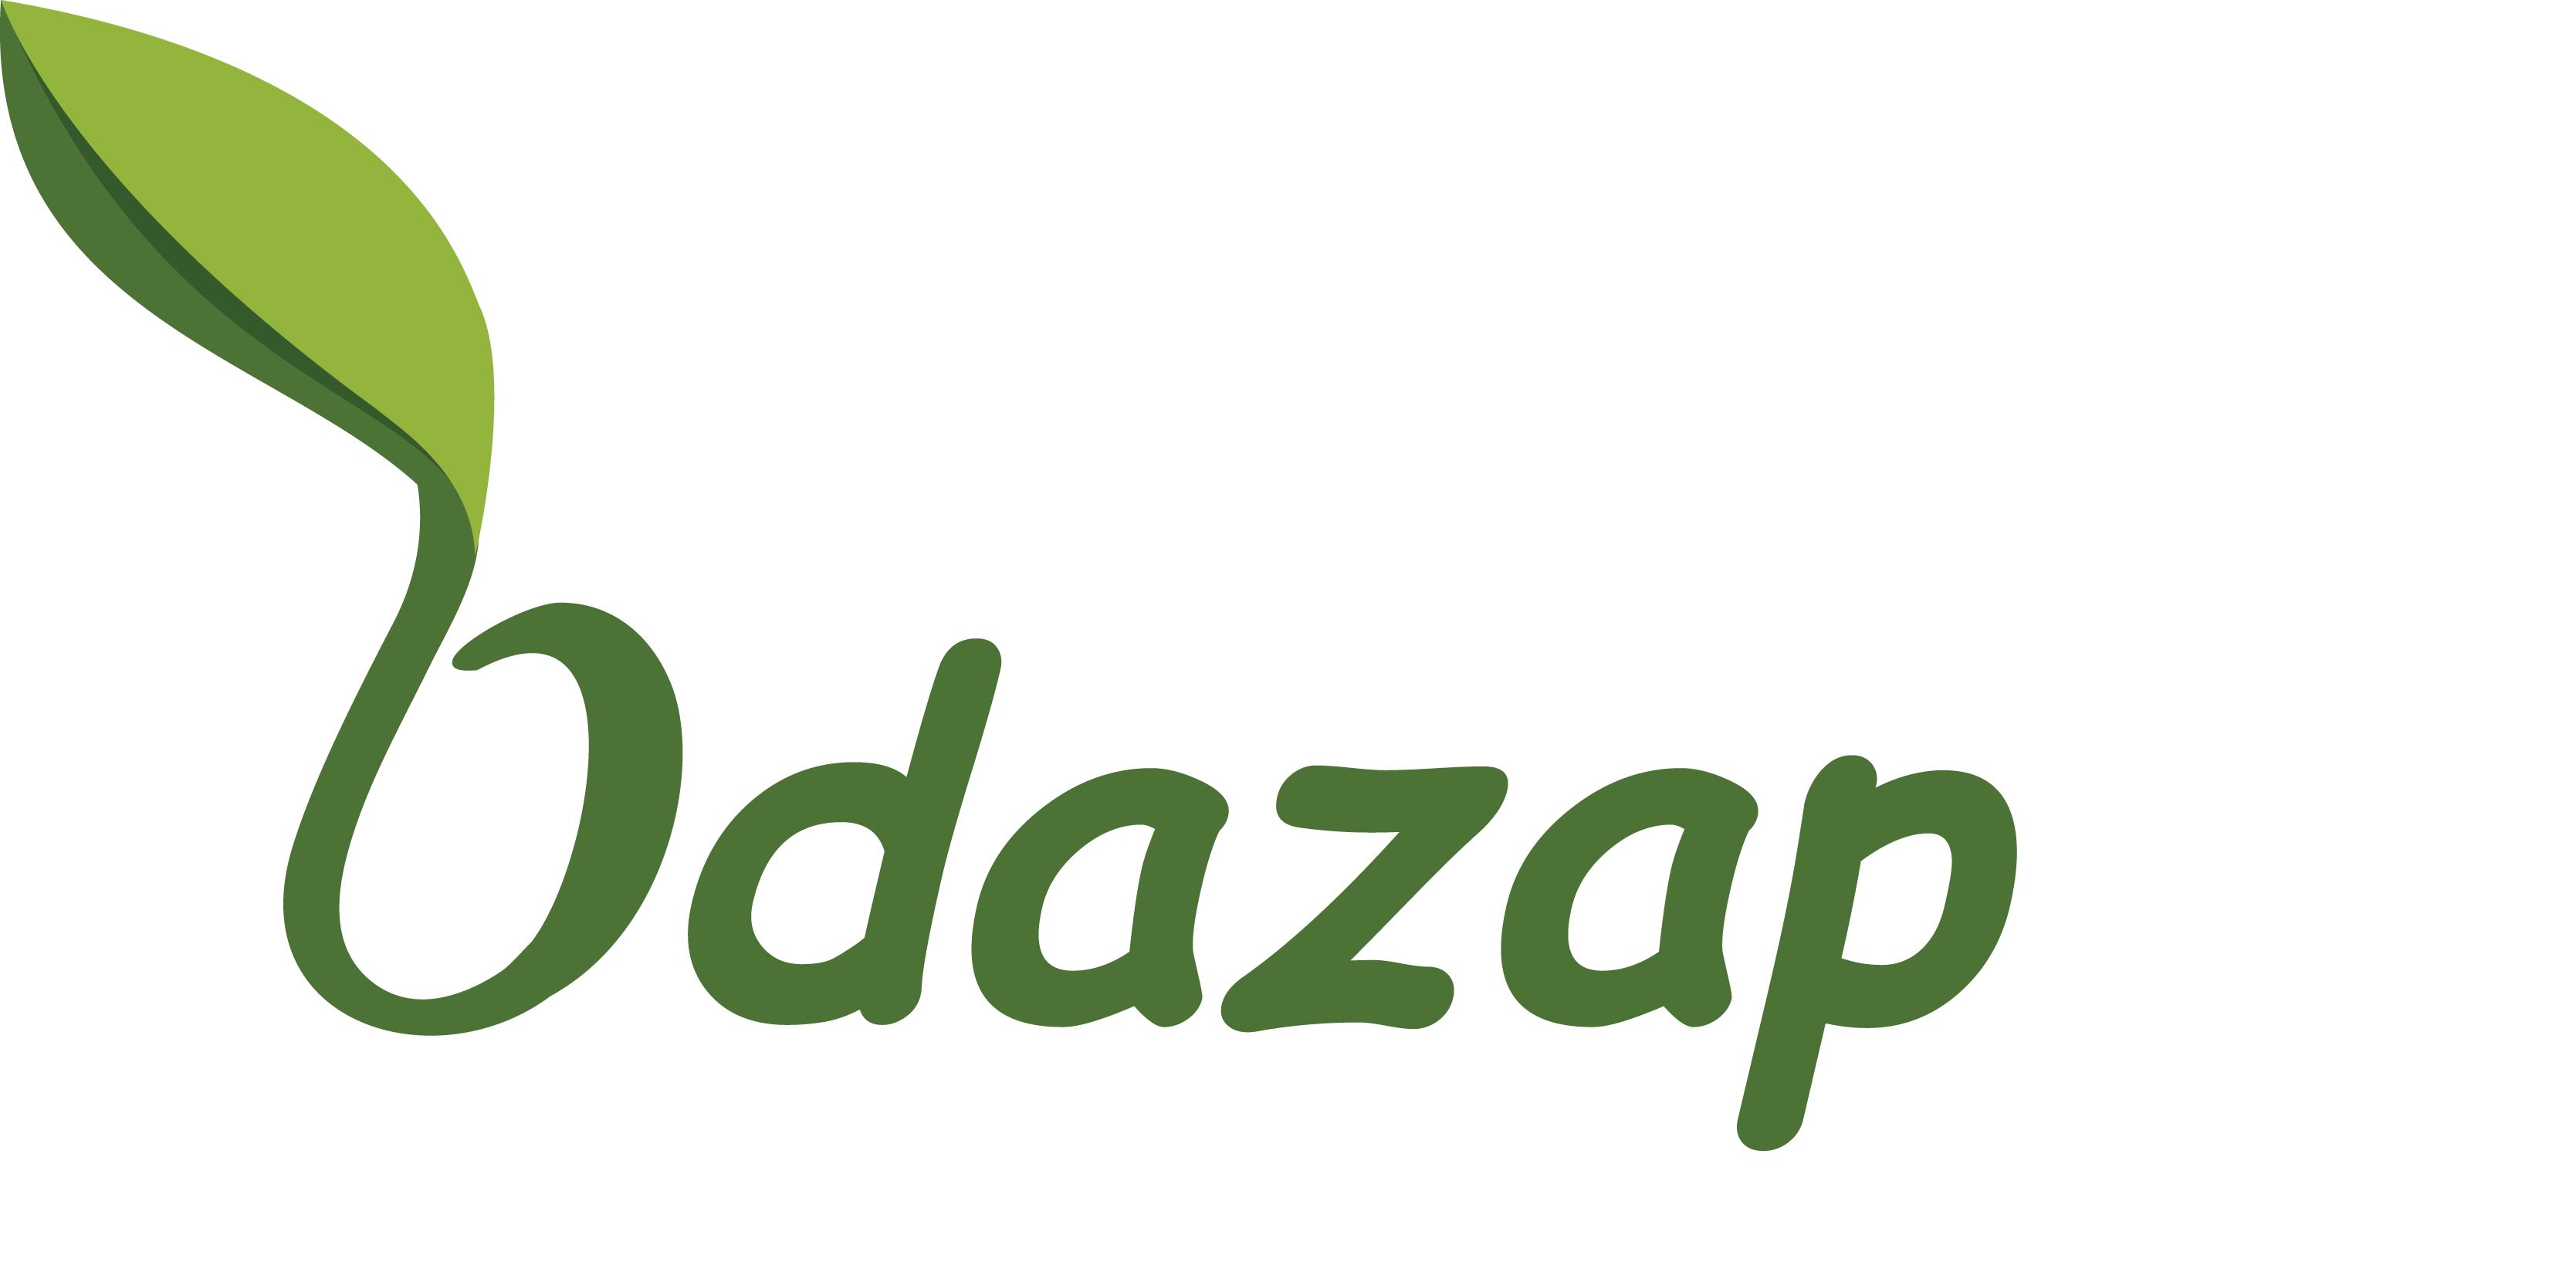 Logo Design by Danai Rizou - Entry No. 127 in the Logo Design Contest New Logo Design for ODAZAP.